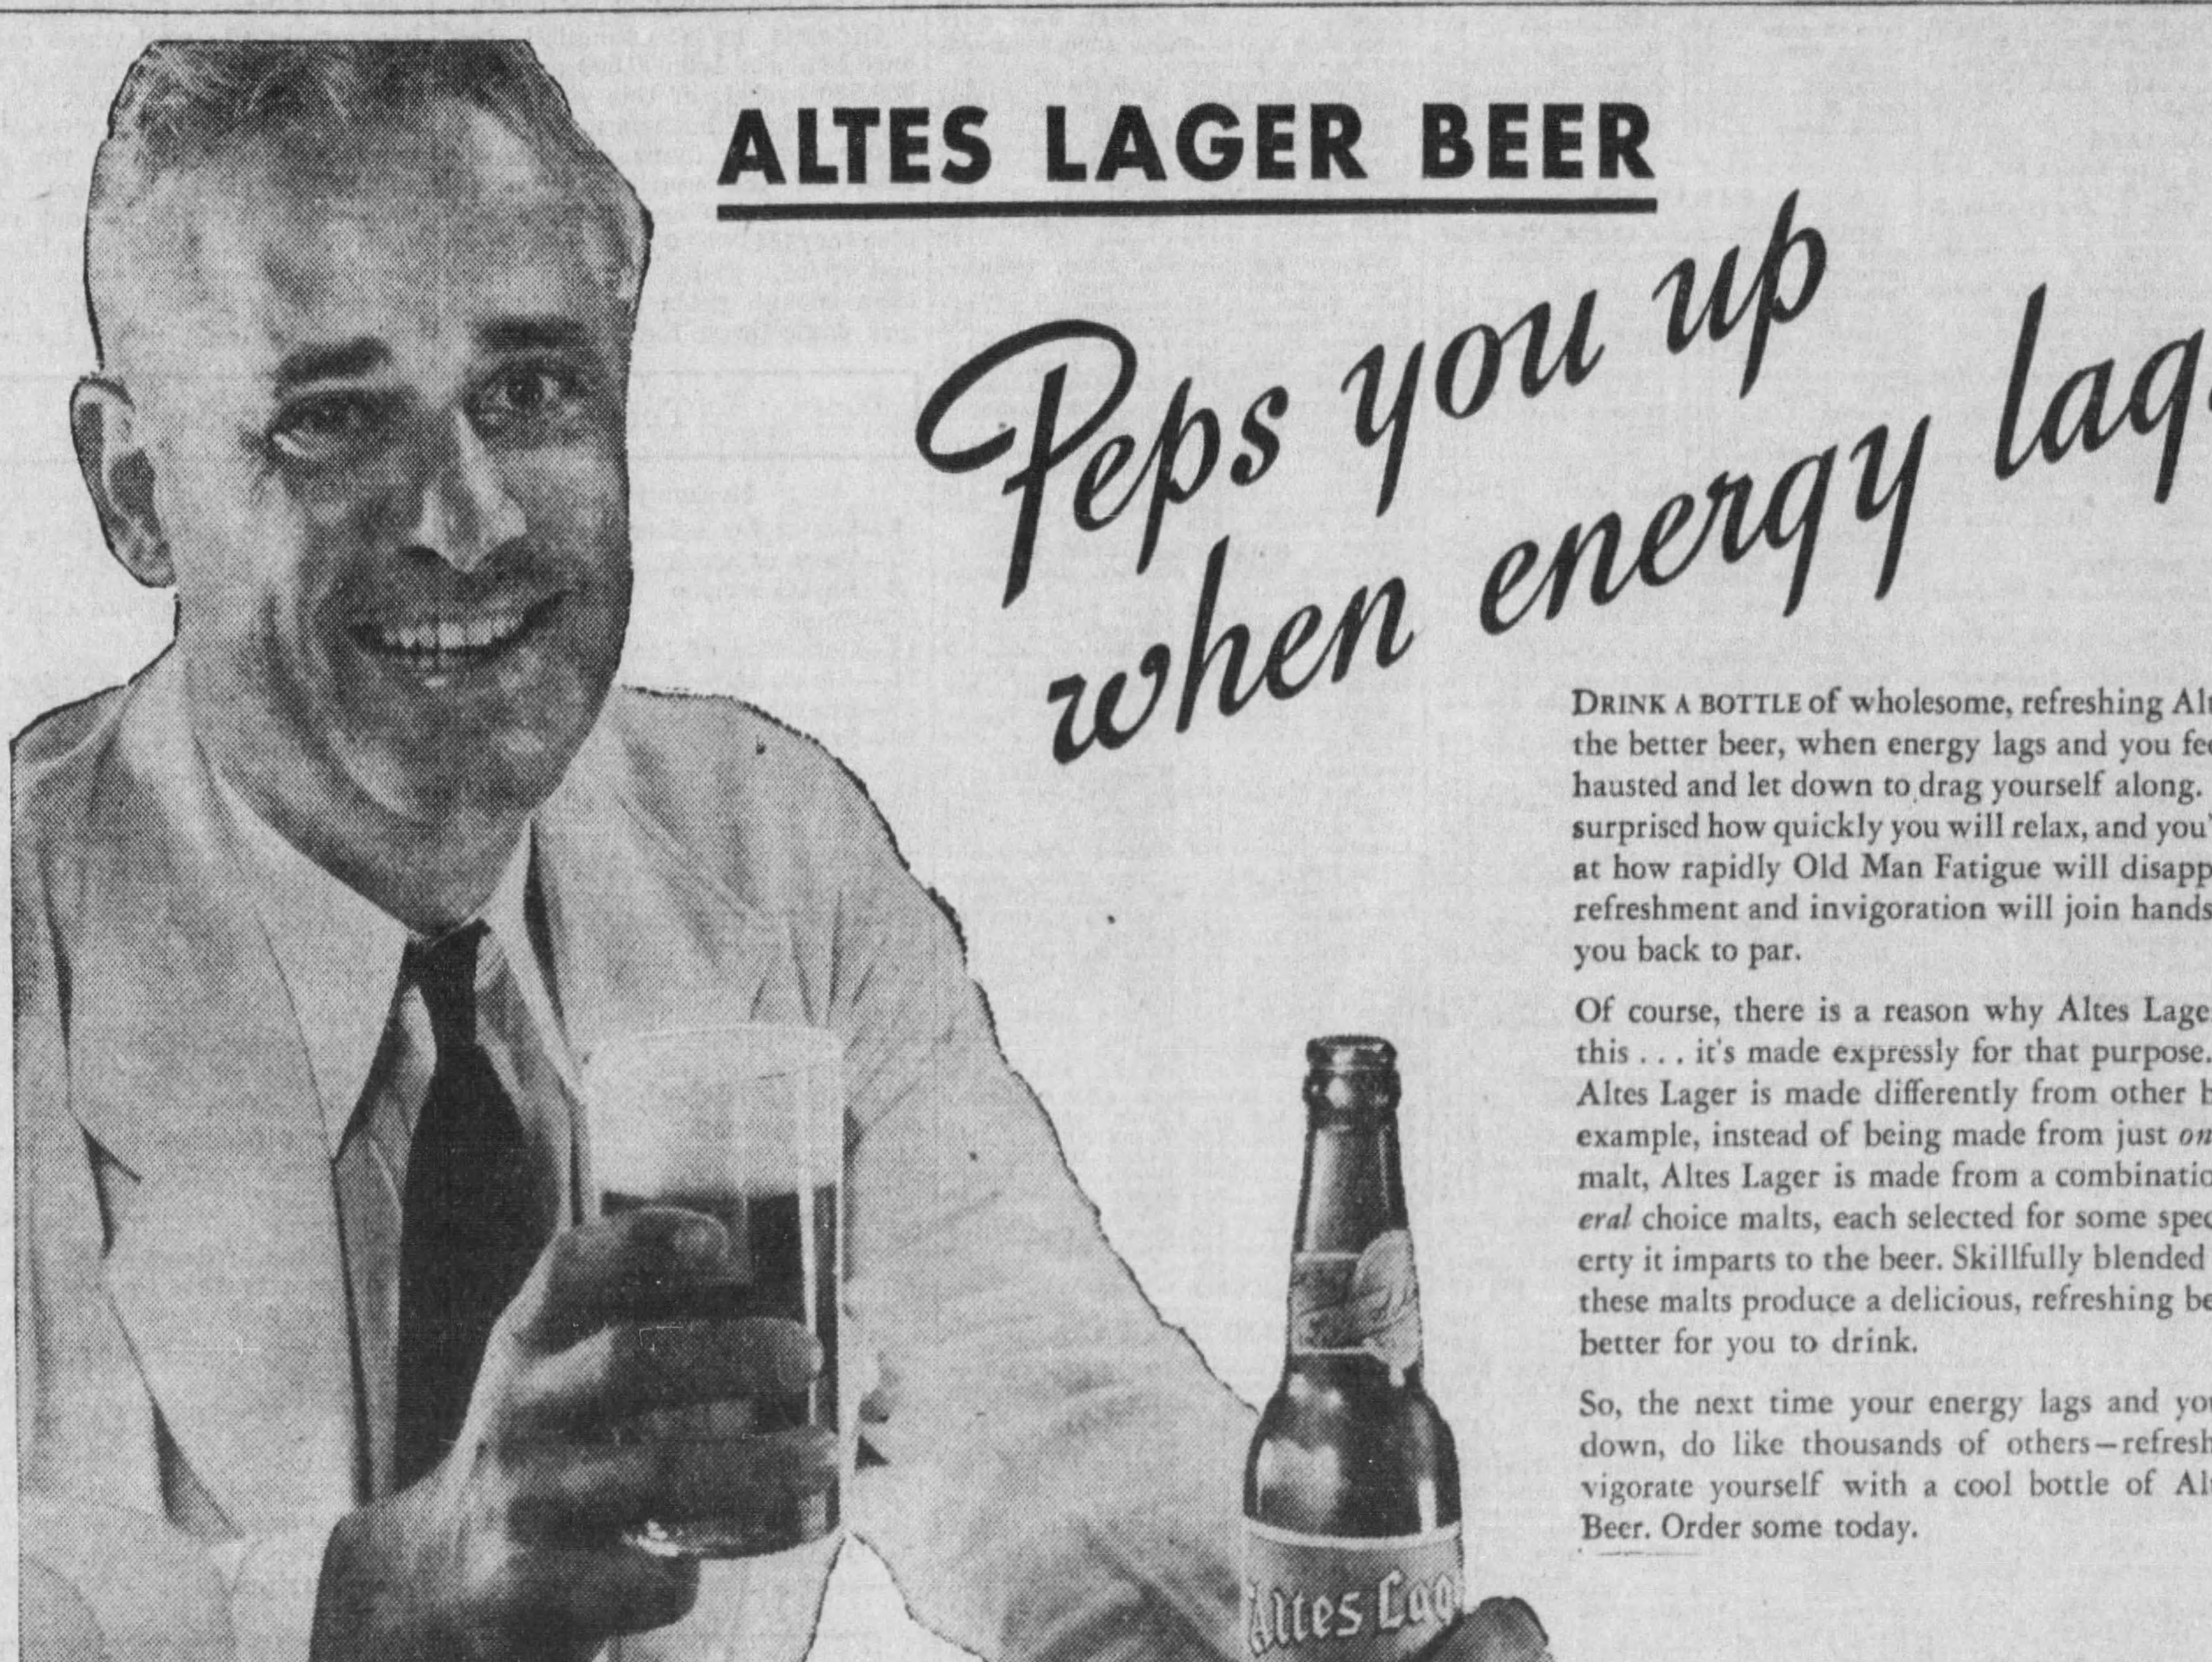 An ad for Altes Lager published in the Free Press on Aug. 22, 1938.